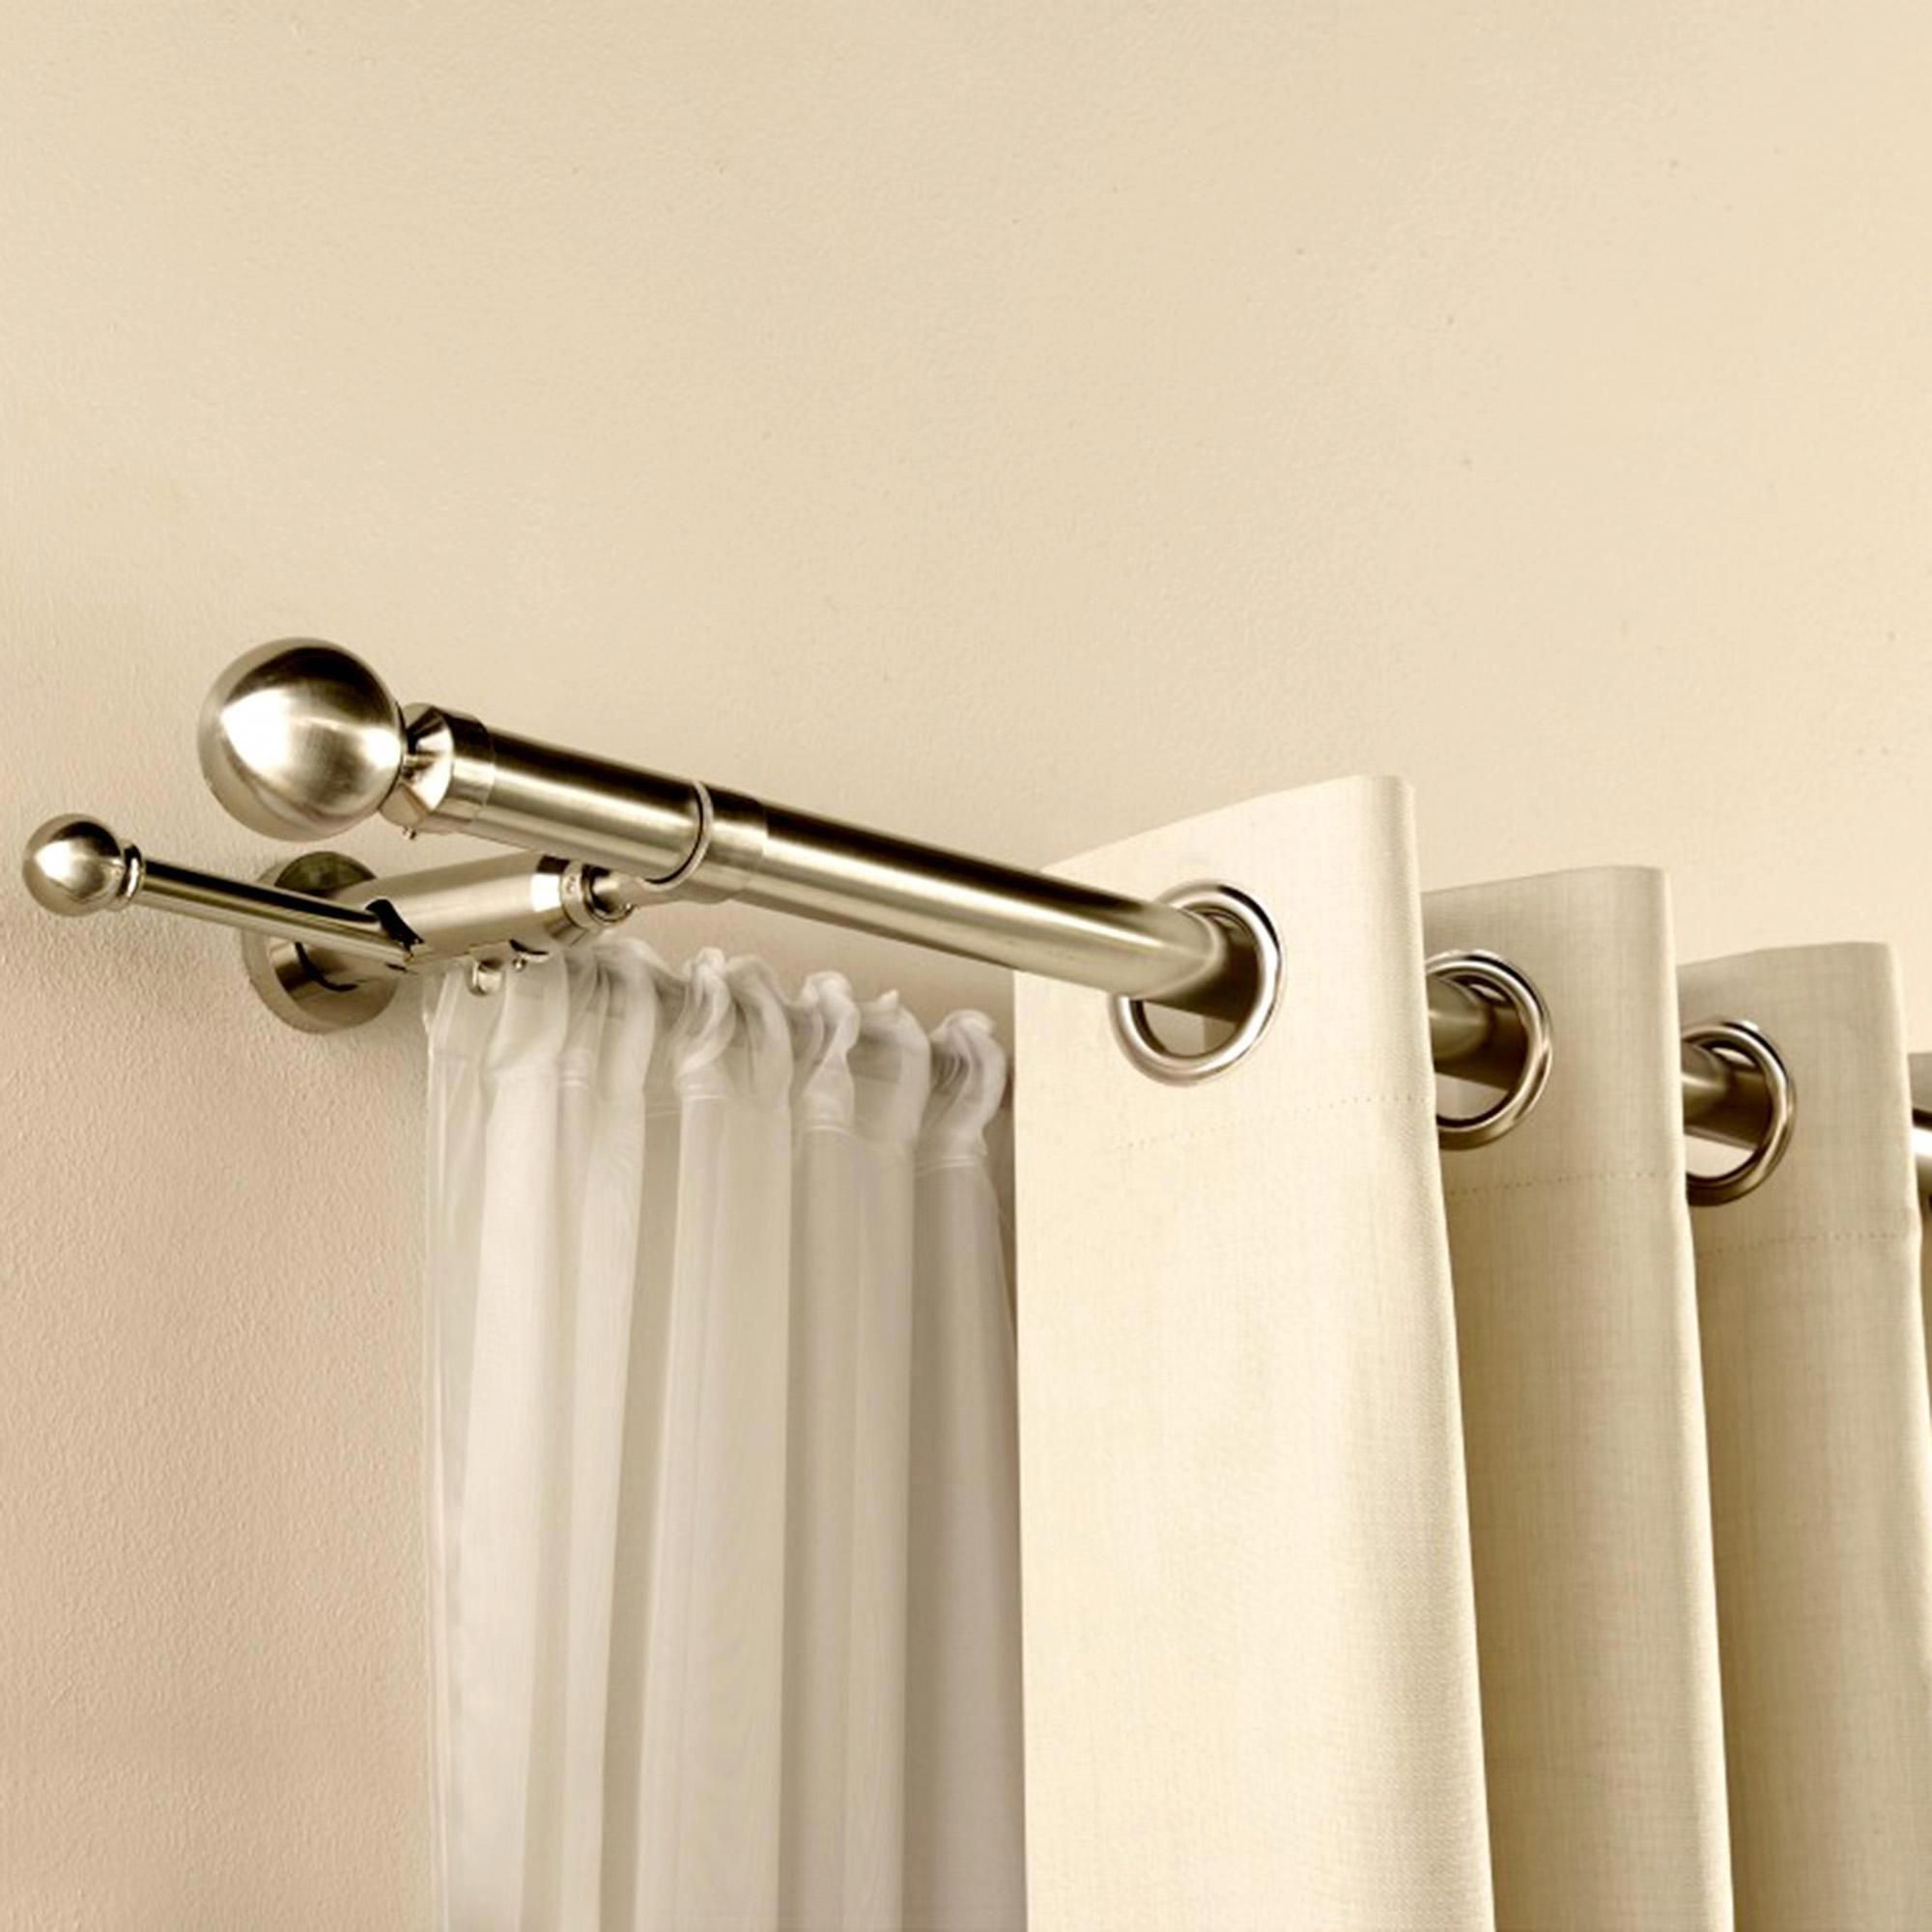 Tips On Selecting Striking Curtain Poles Livingroomdecorcurtains